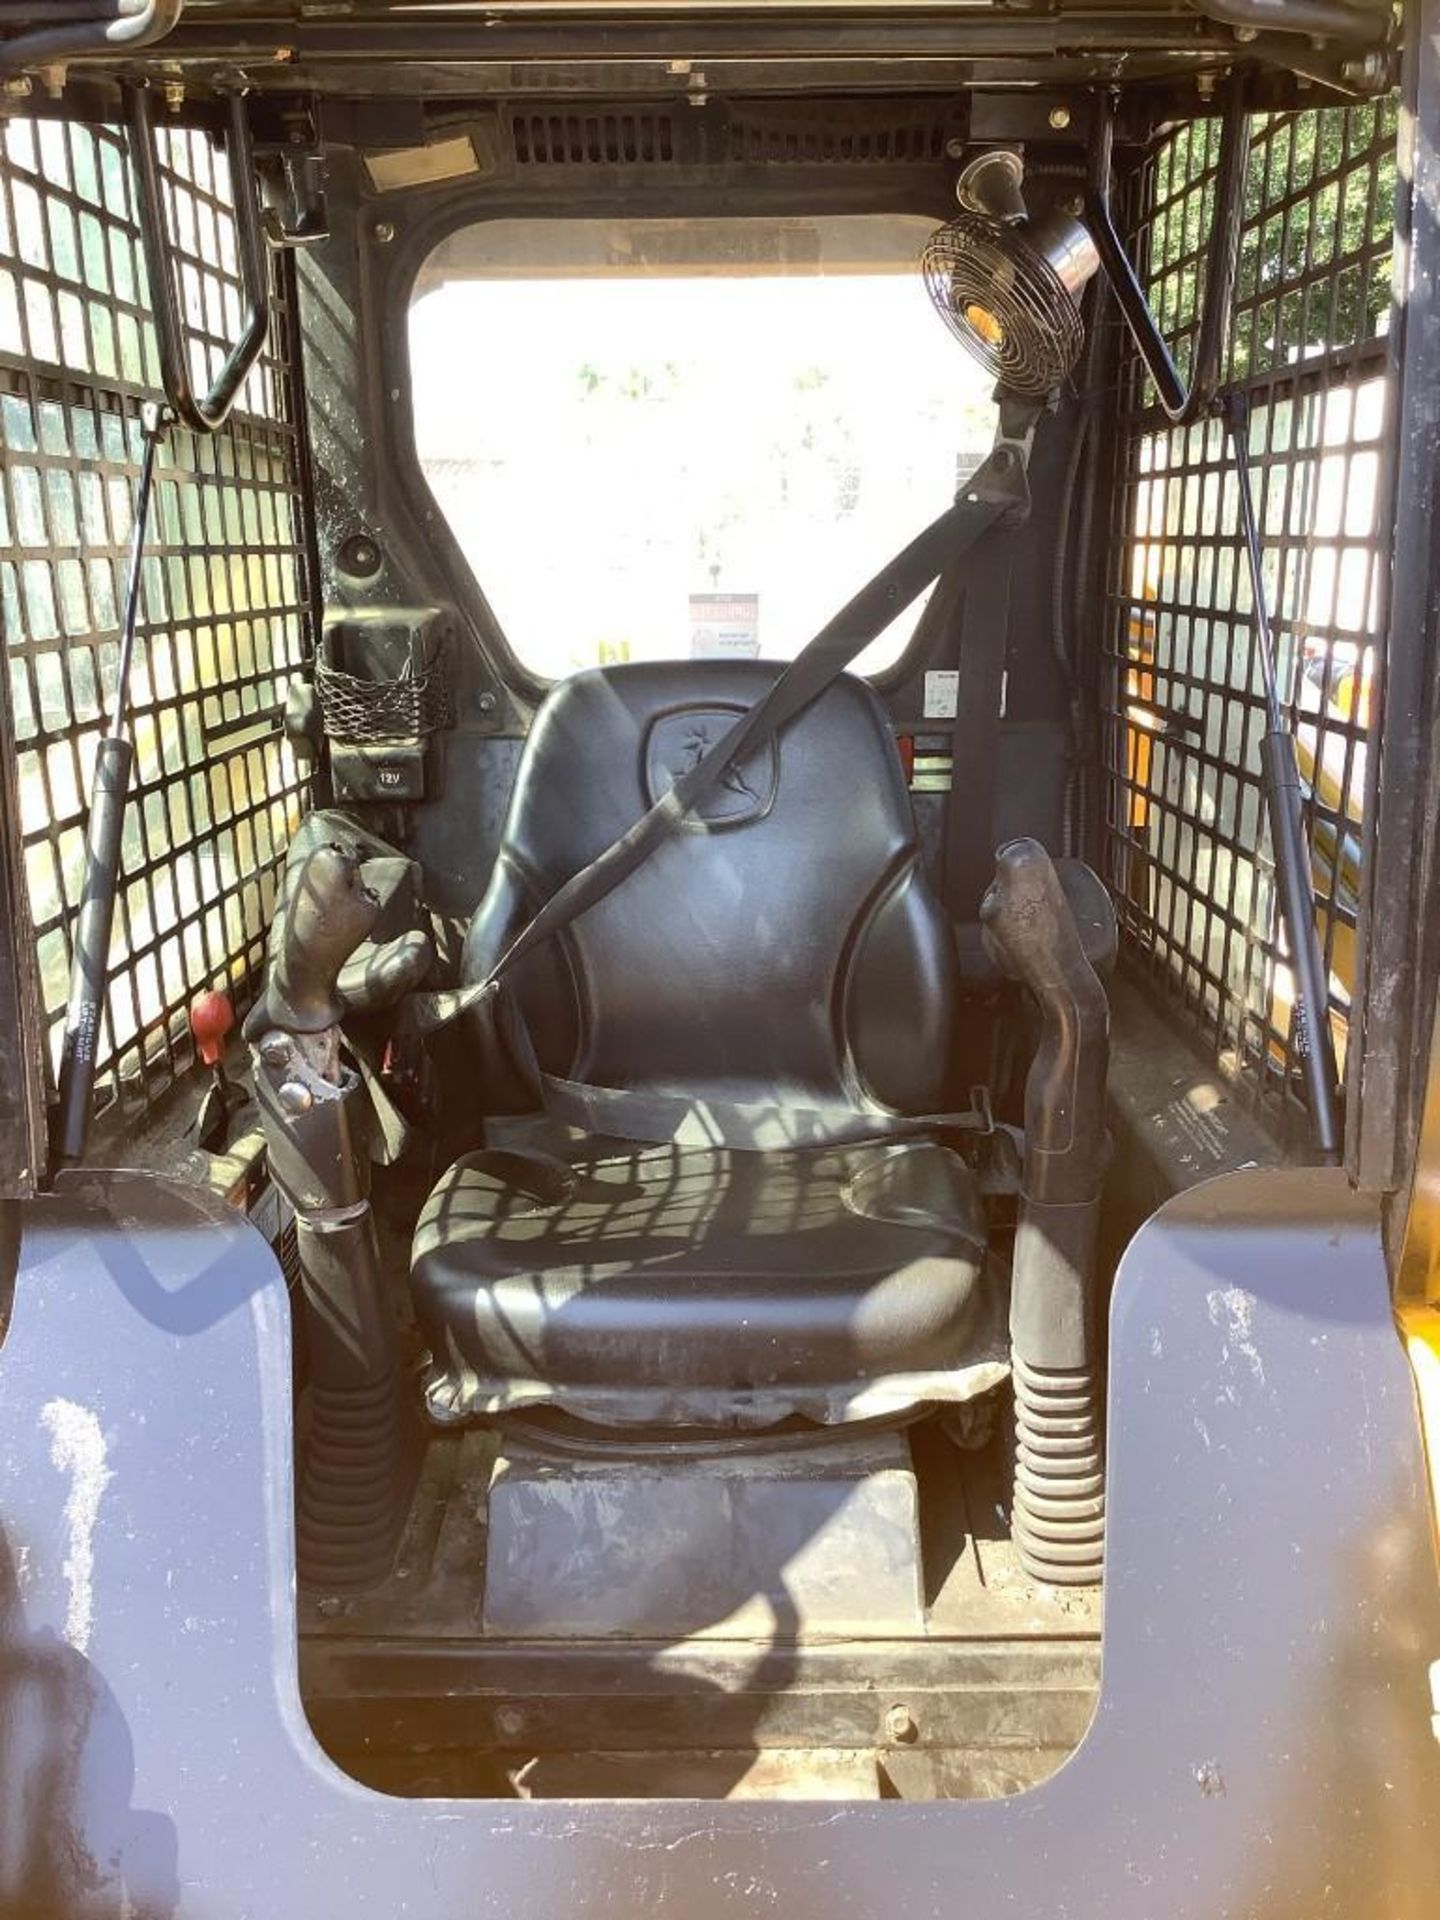 JOHN DEERE SKIDSTEER MODEL 315, DIESEL, GRAPPLE ATTACHMENT, SOLID TIRES, AUX HYDRAULIC, ENCLOSED CAB - Image 11 of 15